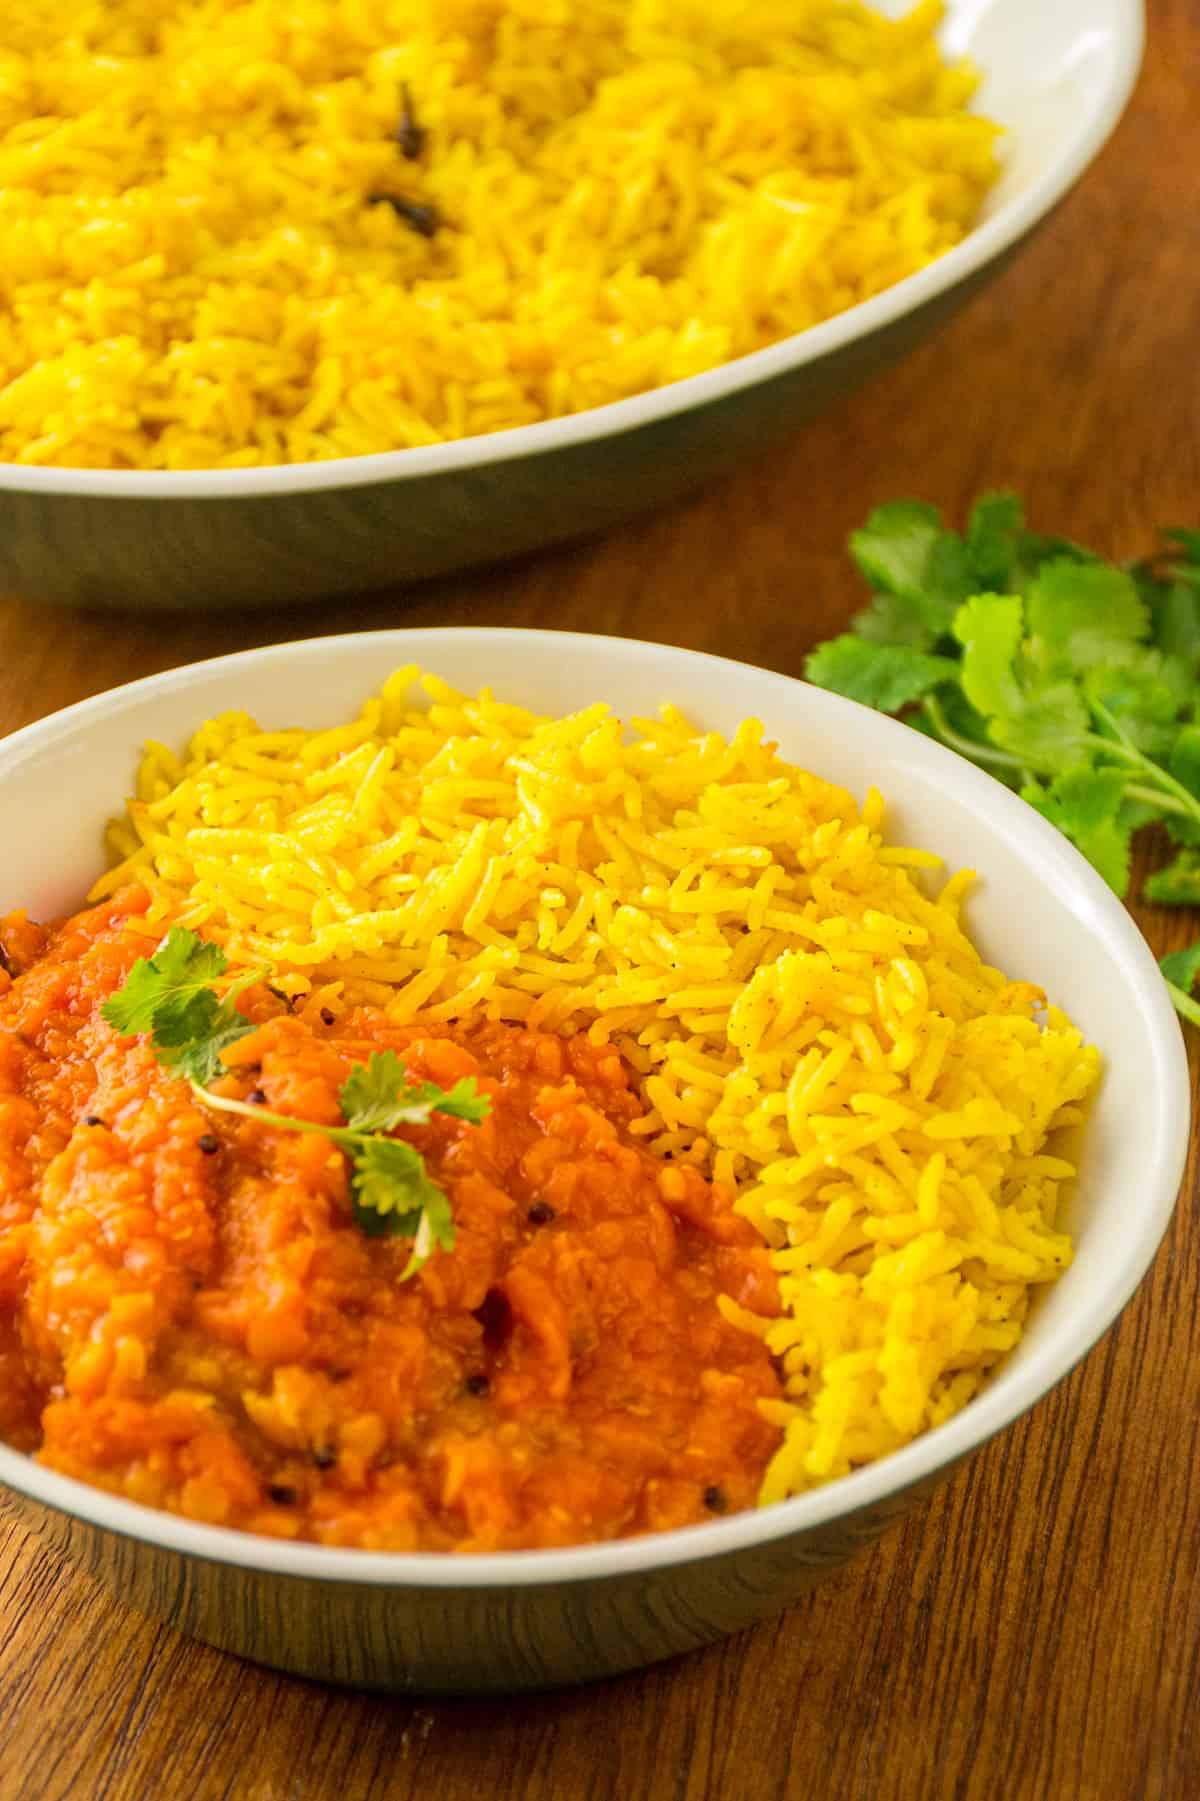 A bowl of red lentil dal and baked turmeric rice on the side.